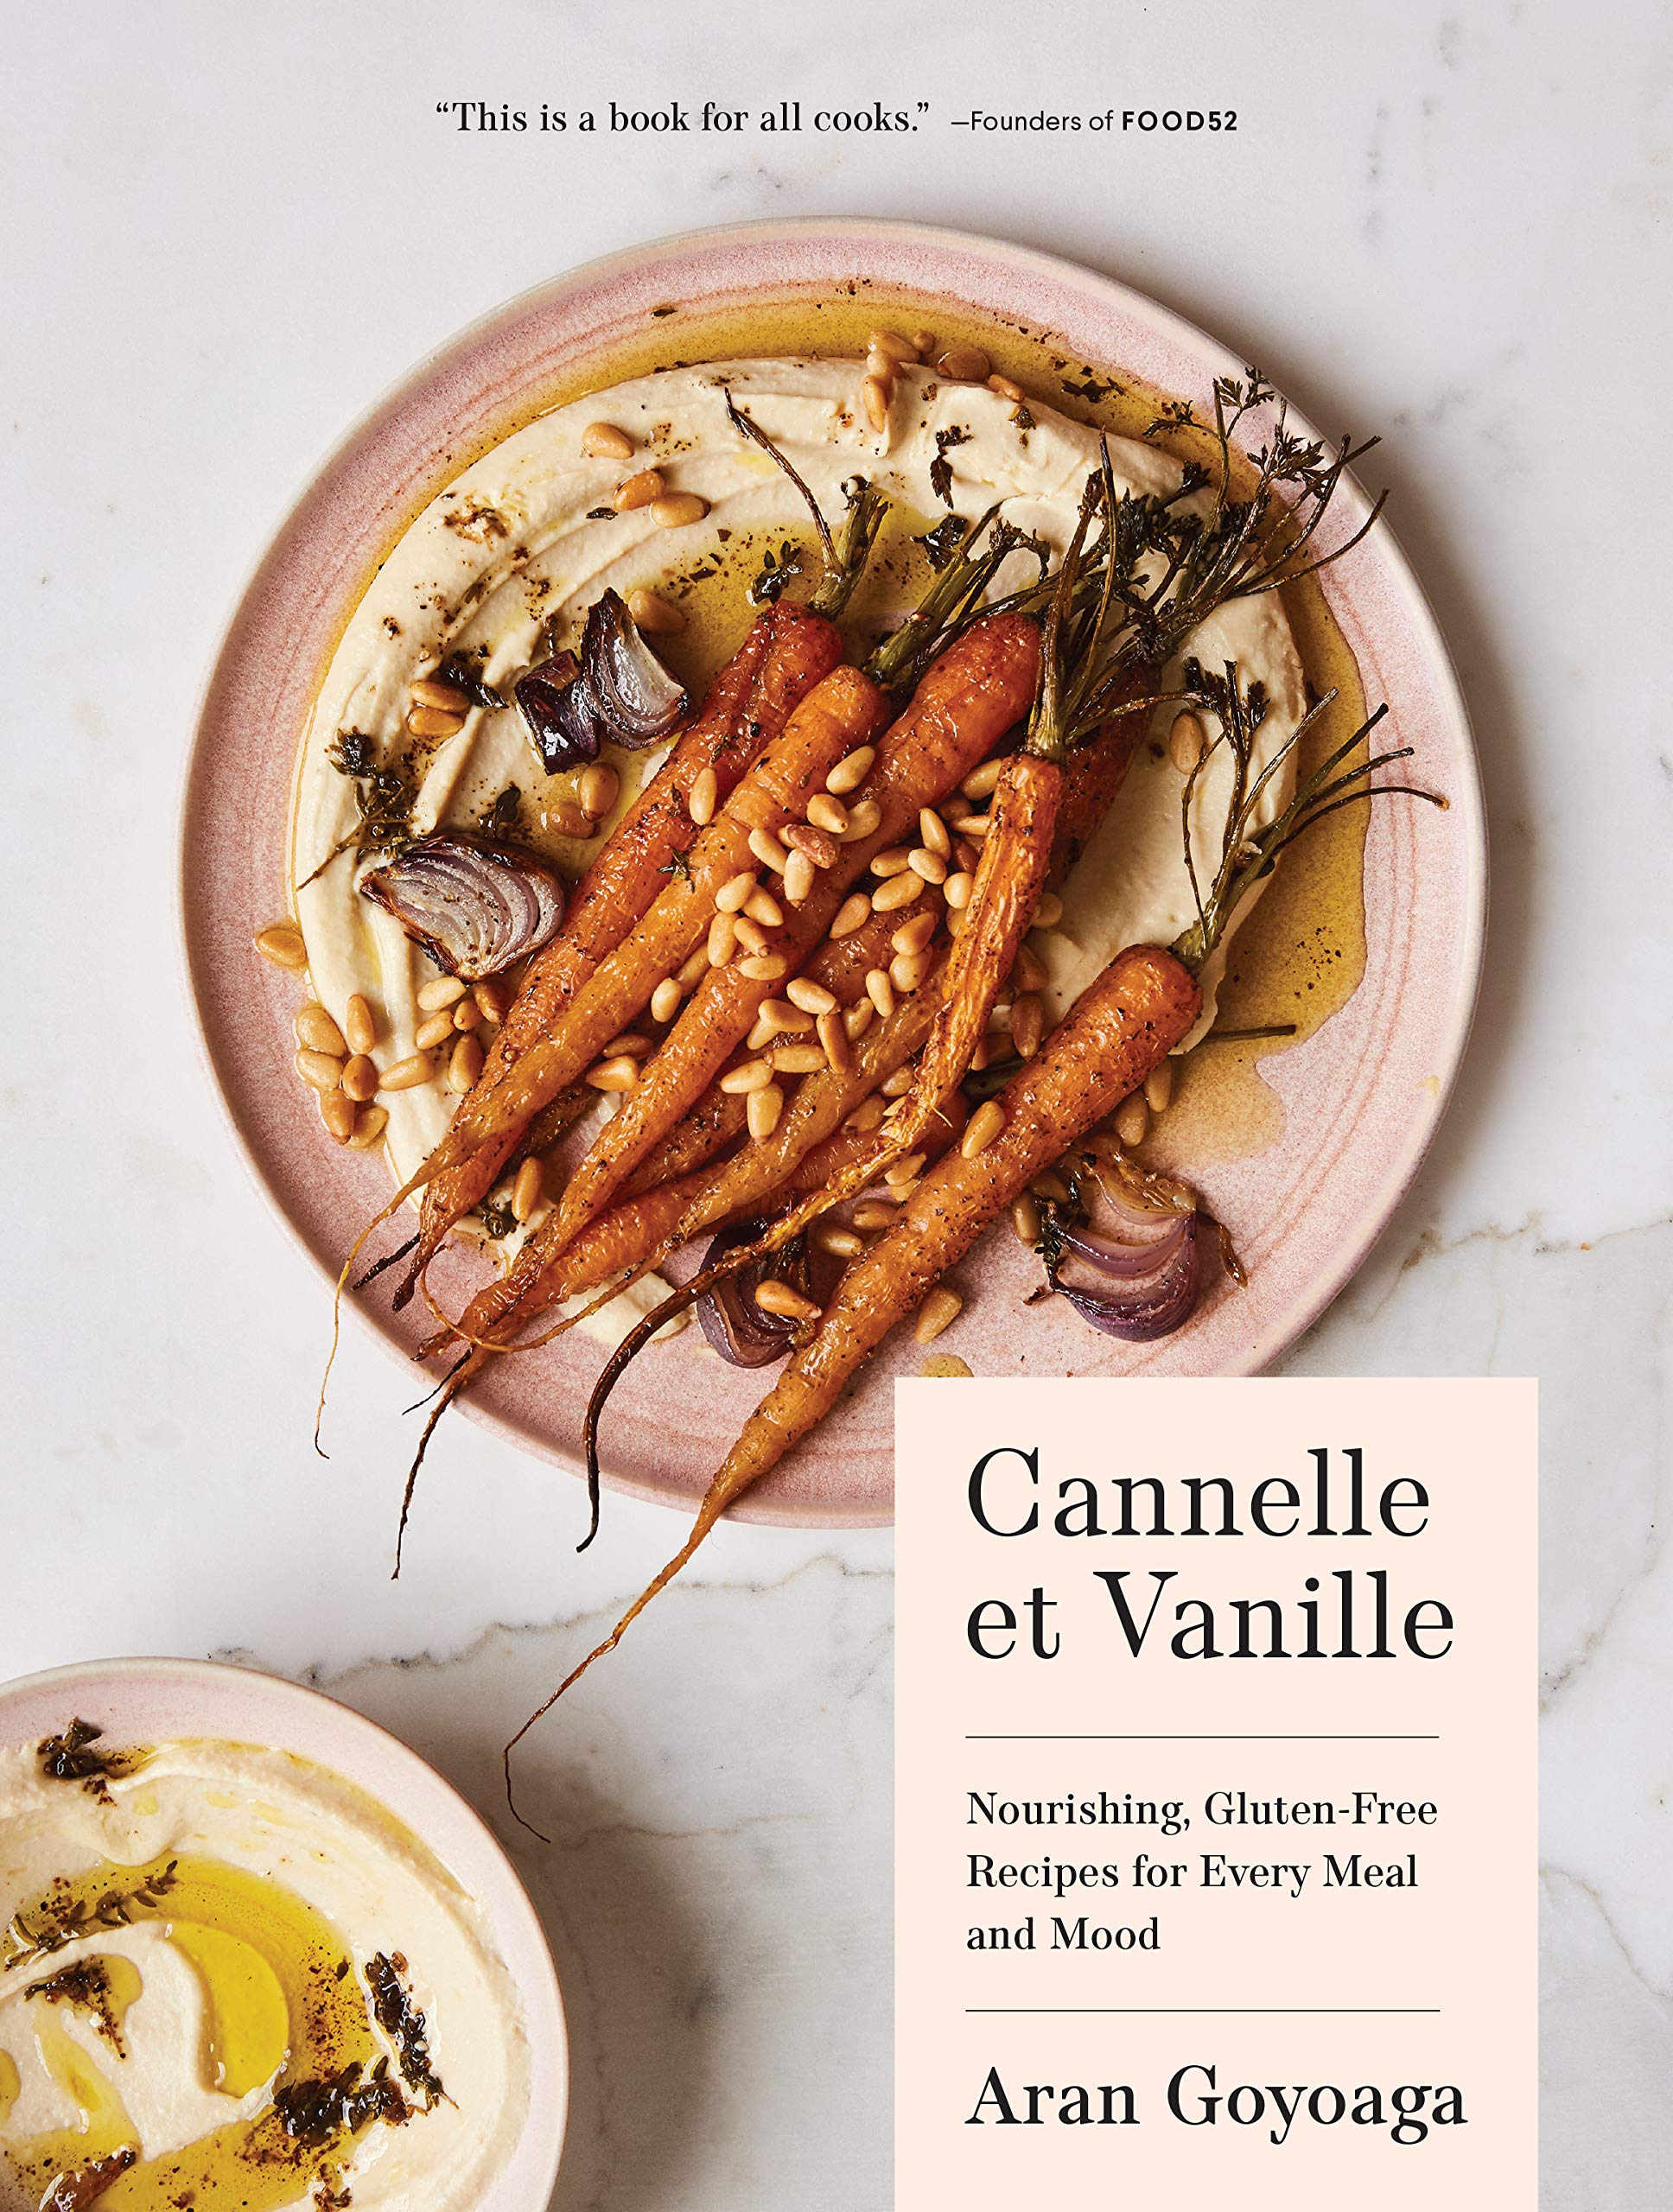 BUY this book: Cannelle et Vanille: Nourishing, Gluten-Free Recipes for Every Meal and Mood